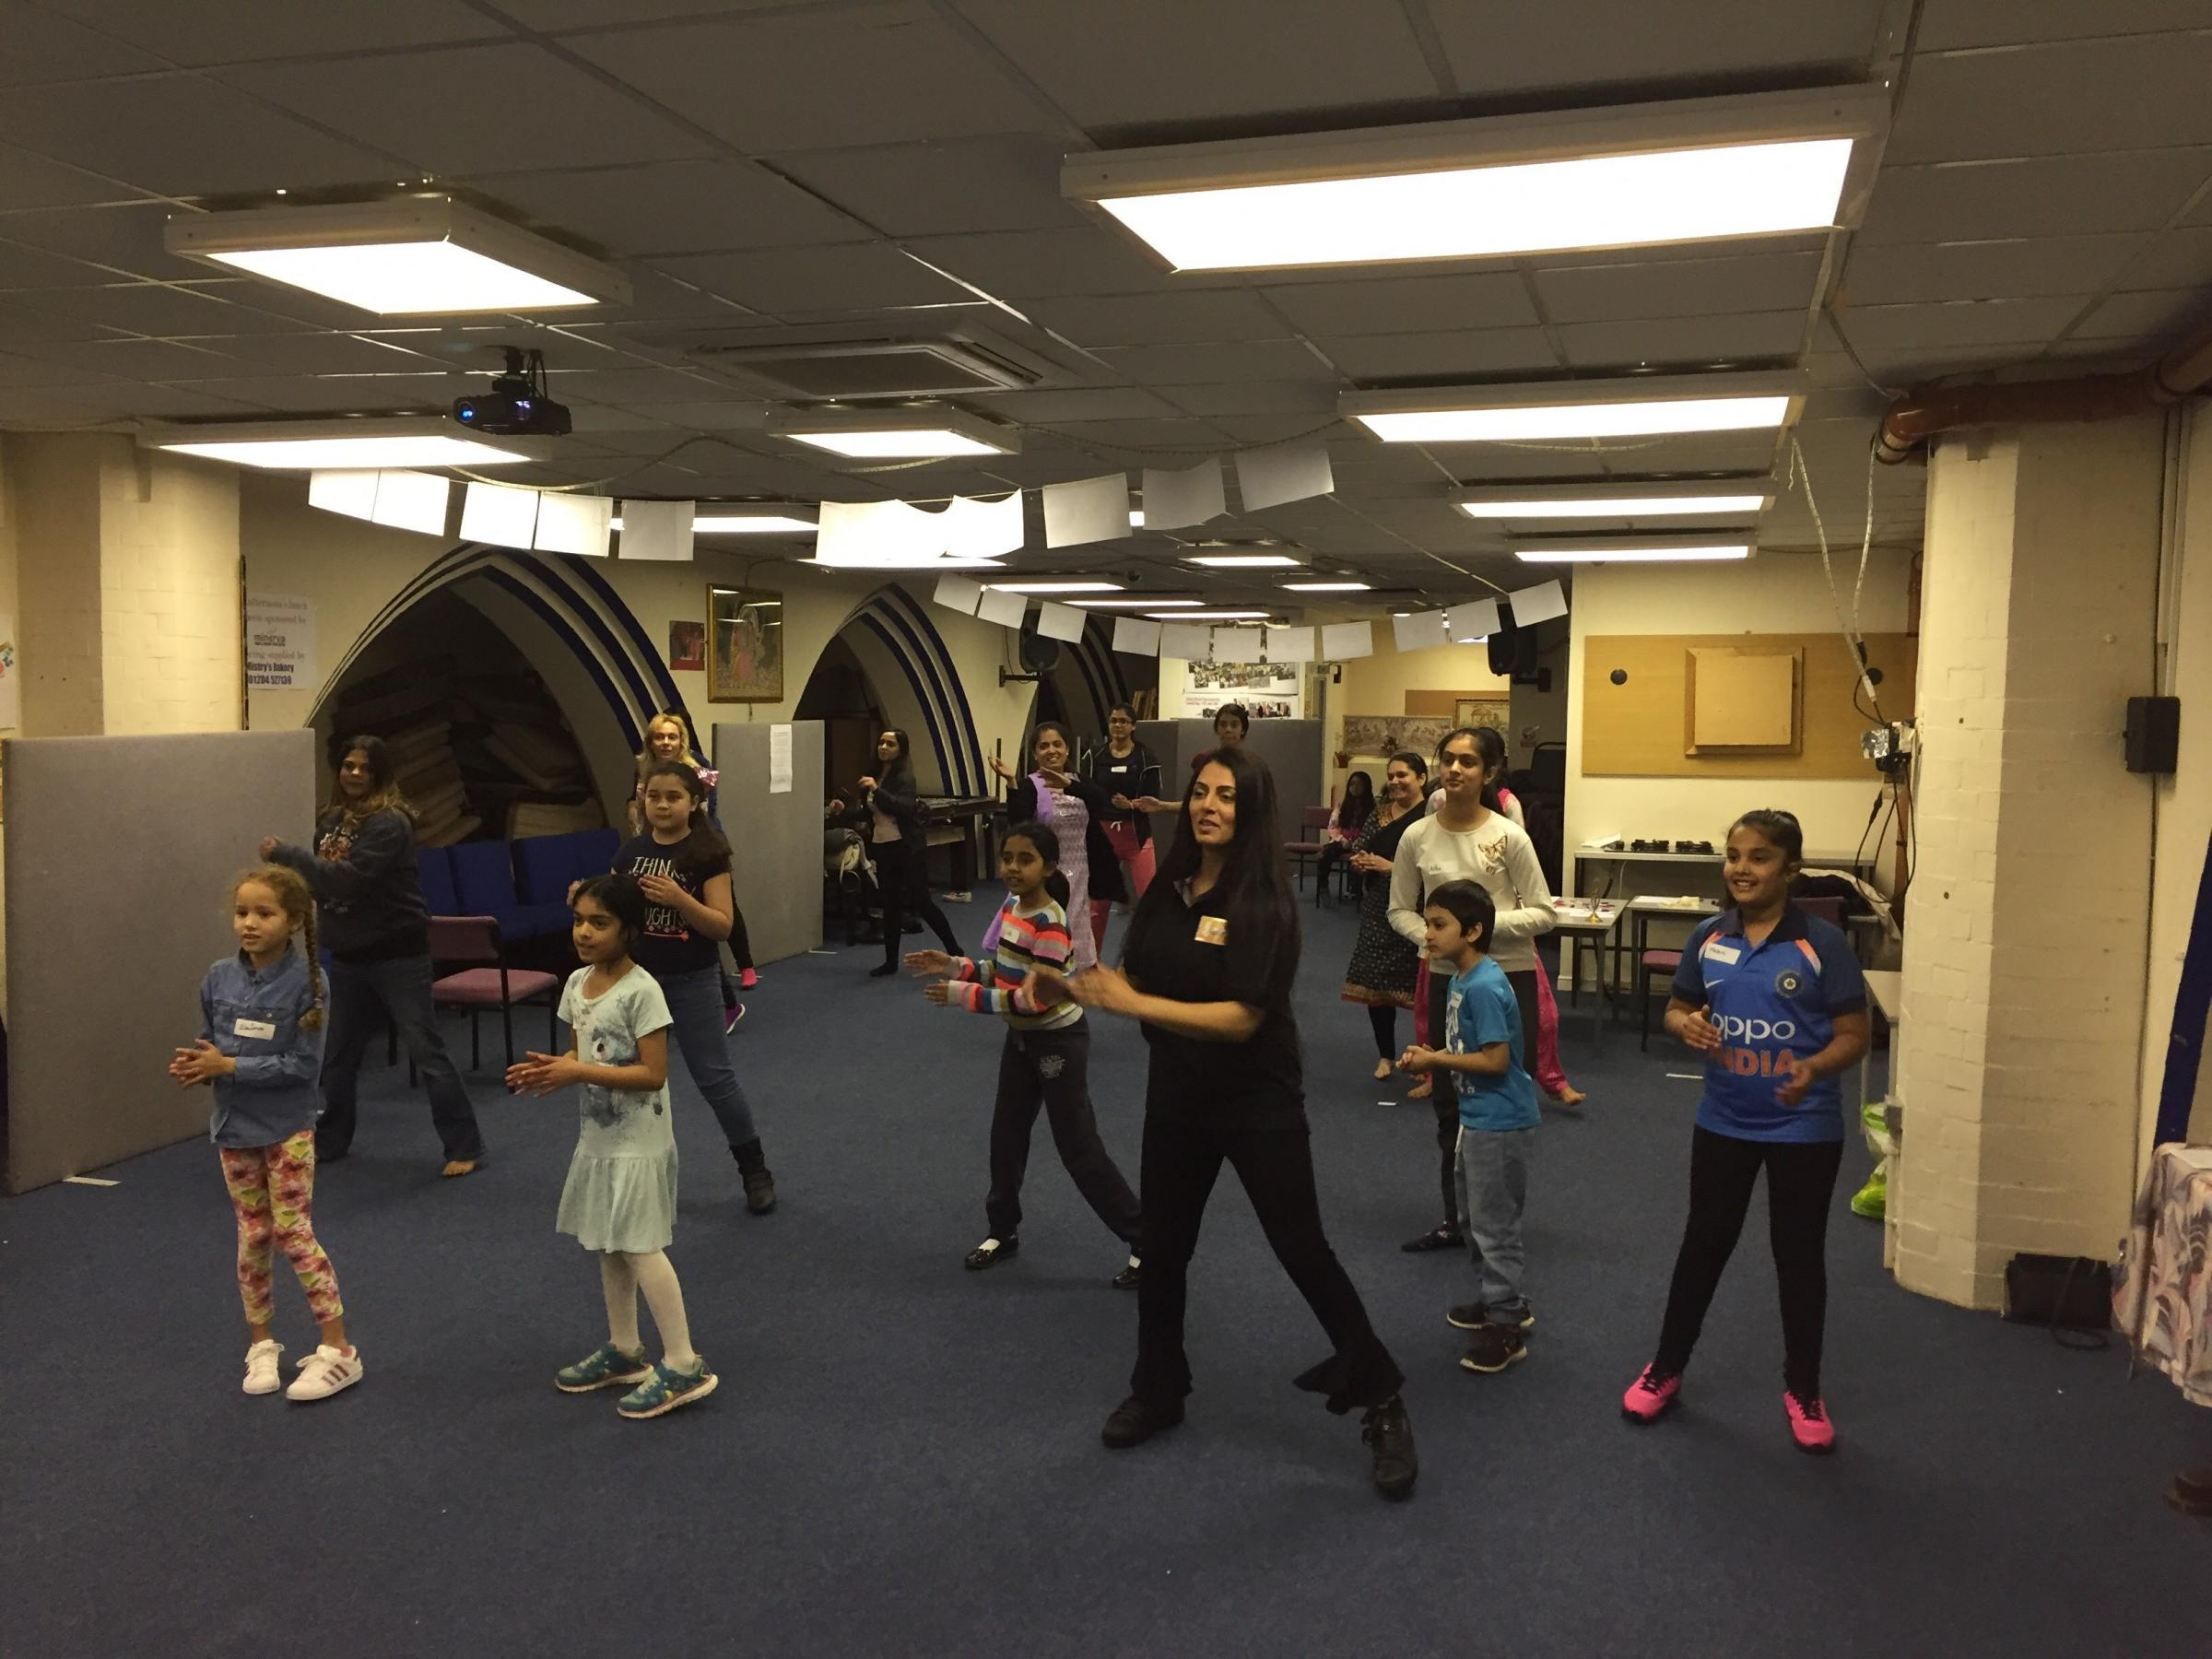 DANCE: The community is invited to take part in Bollywood dancing taster sessions